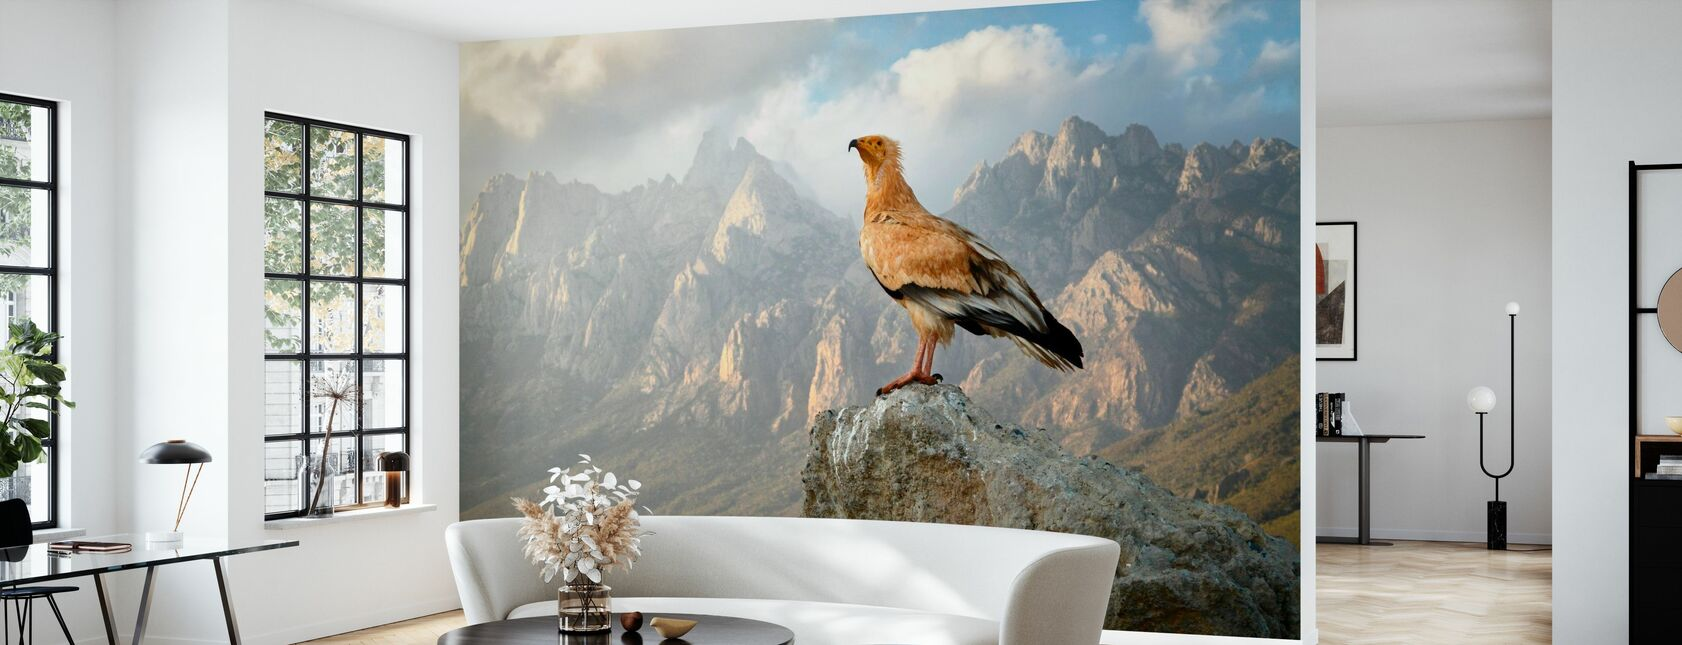 Vulture in Haggeher Mountains - Wallpaper - Living Room